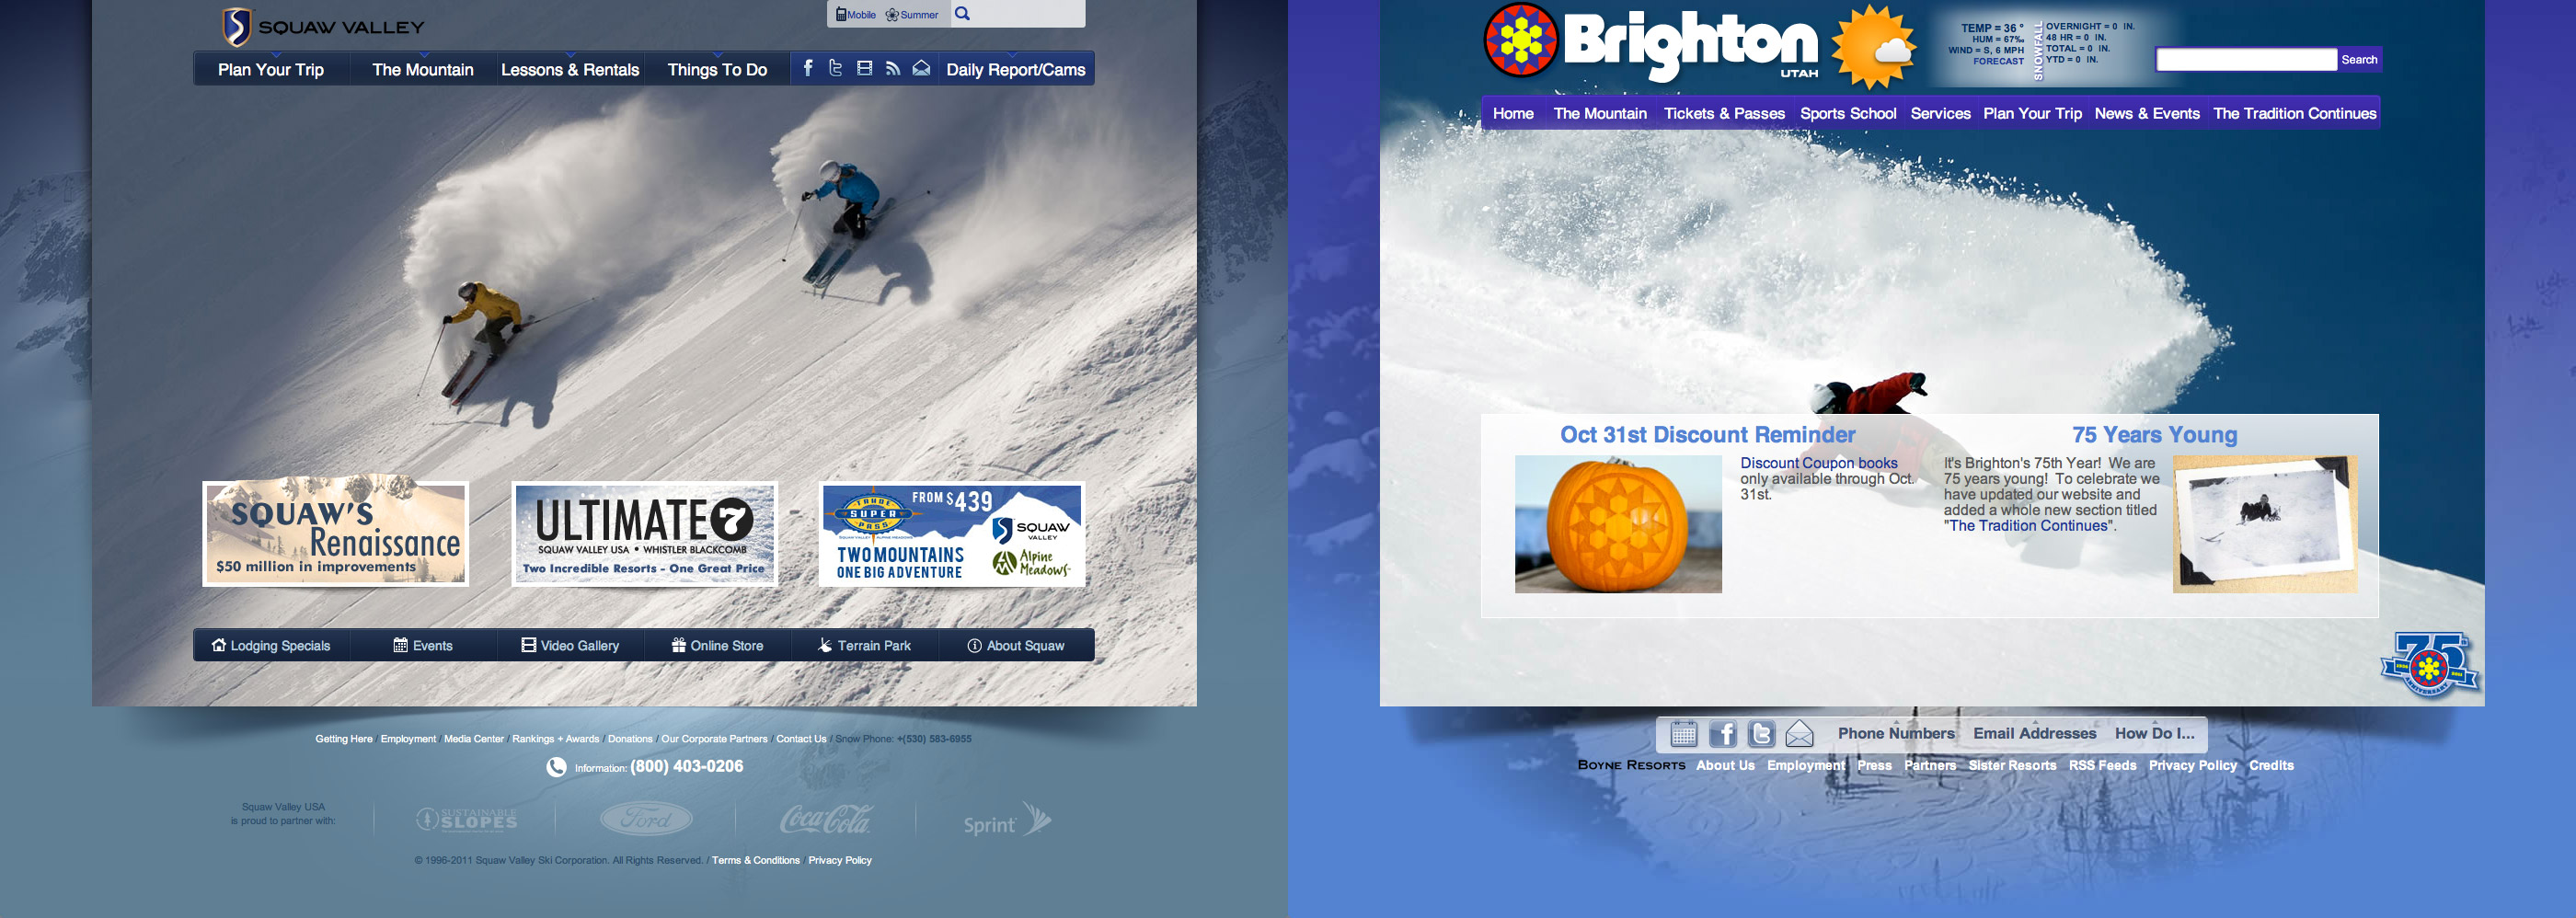 My 2010 design for Squaw Valley's website, next to the recently launched Brighton website.